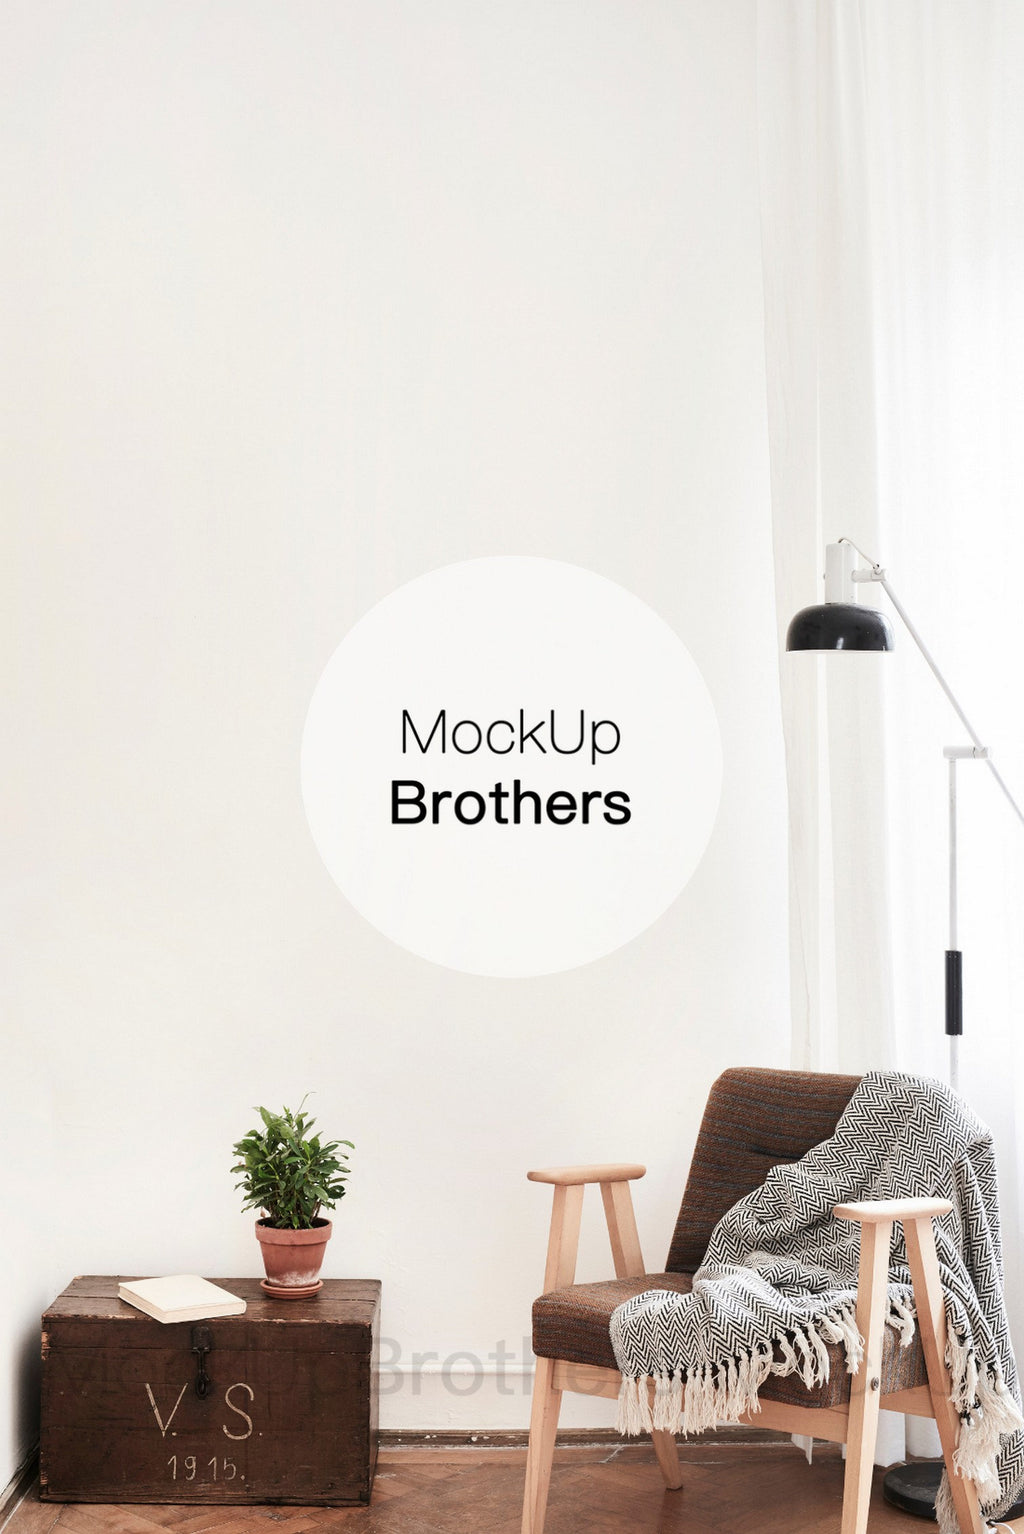 Interior mock up with blank wall from Mockup Brothers